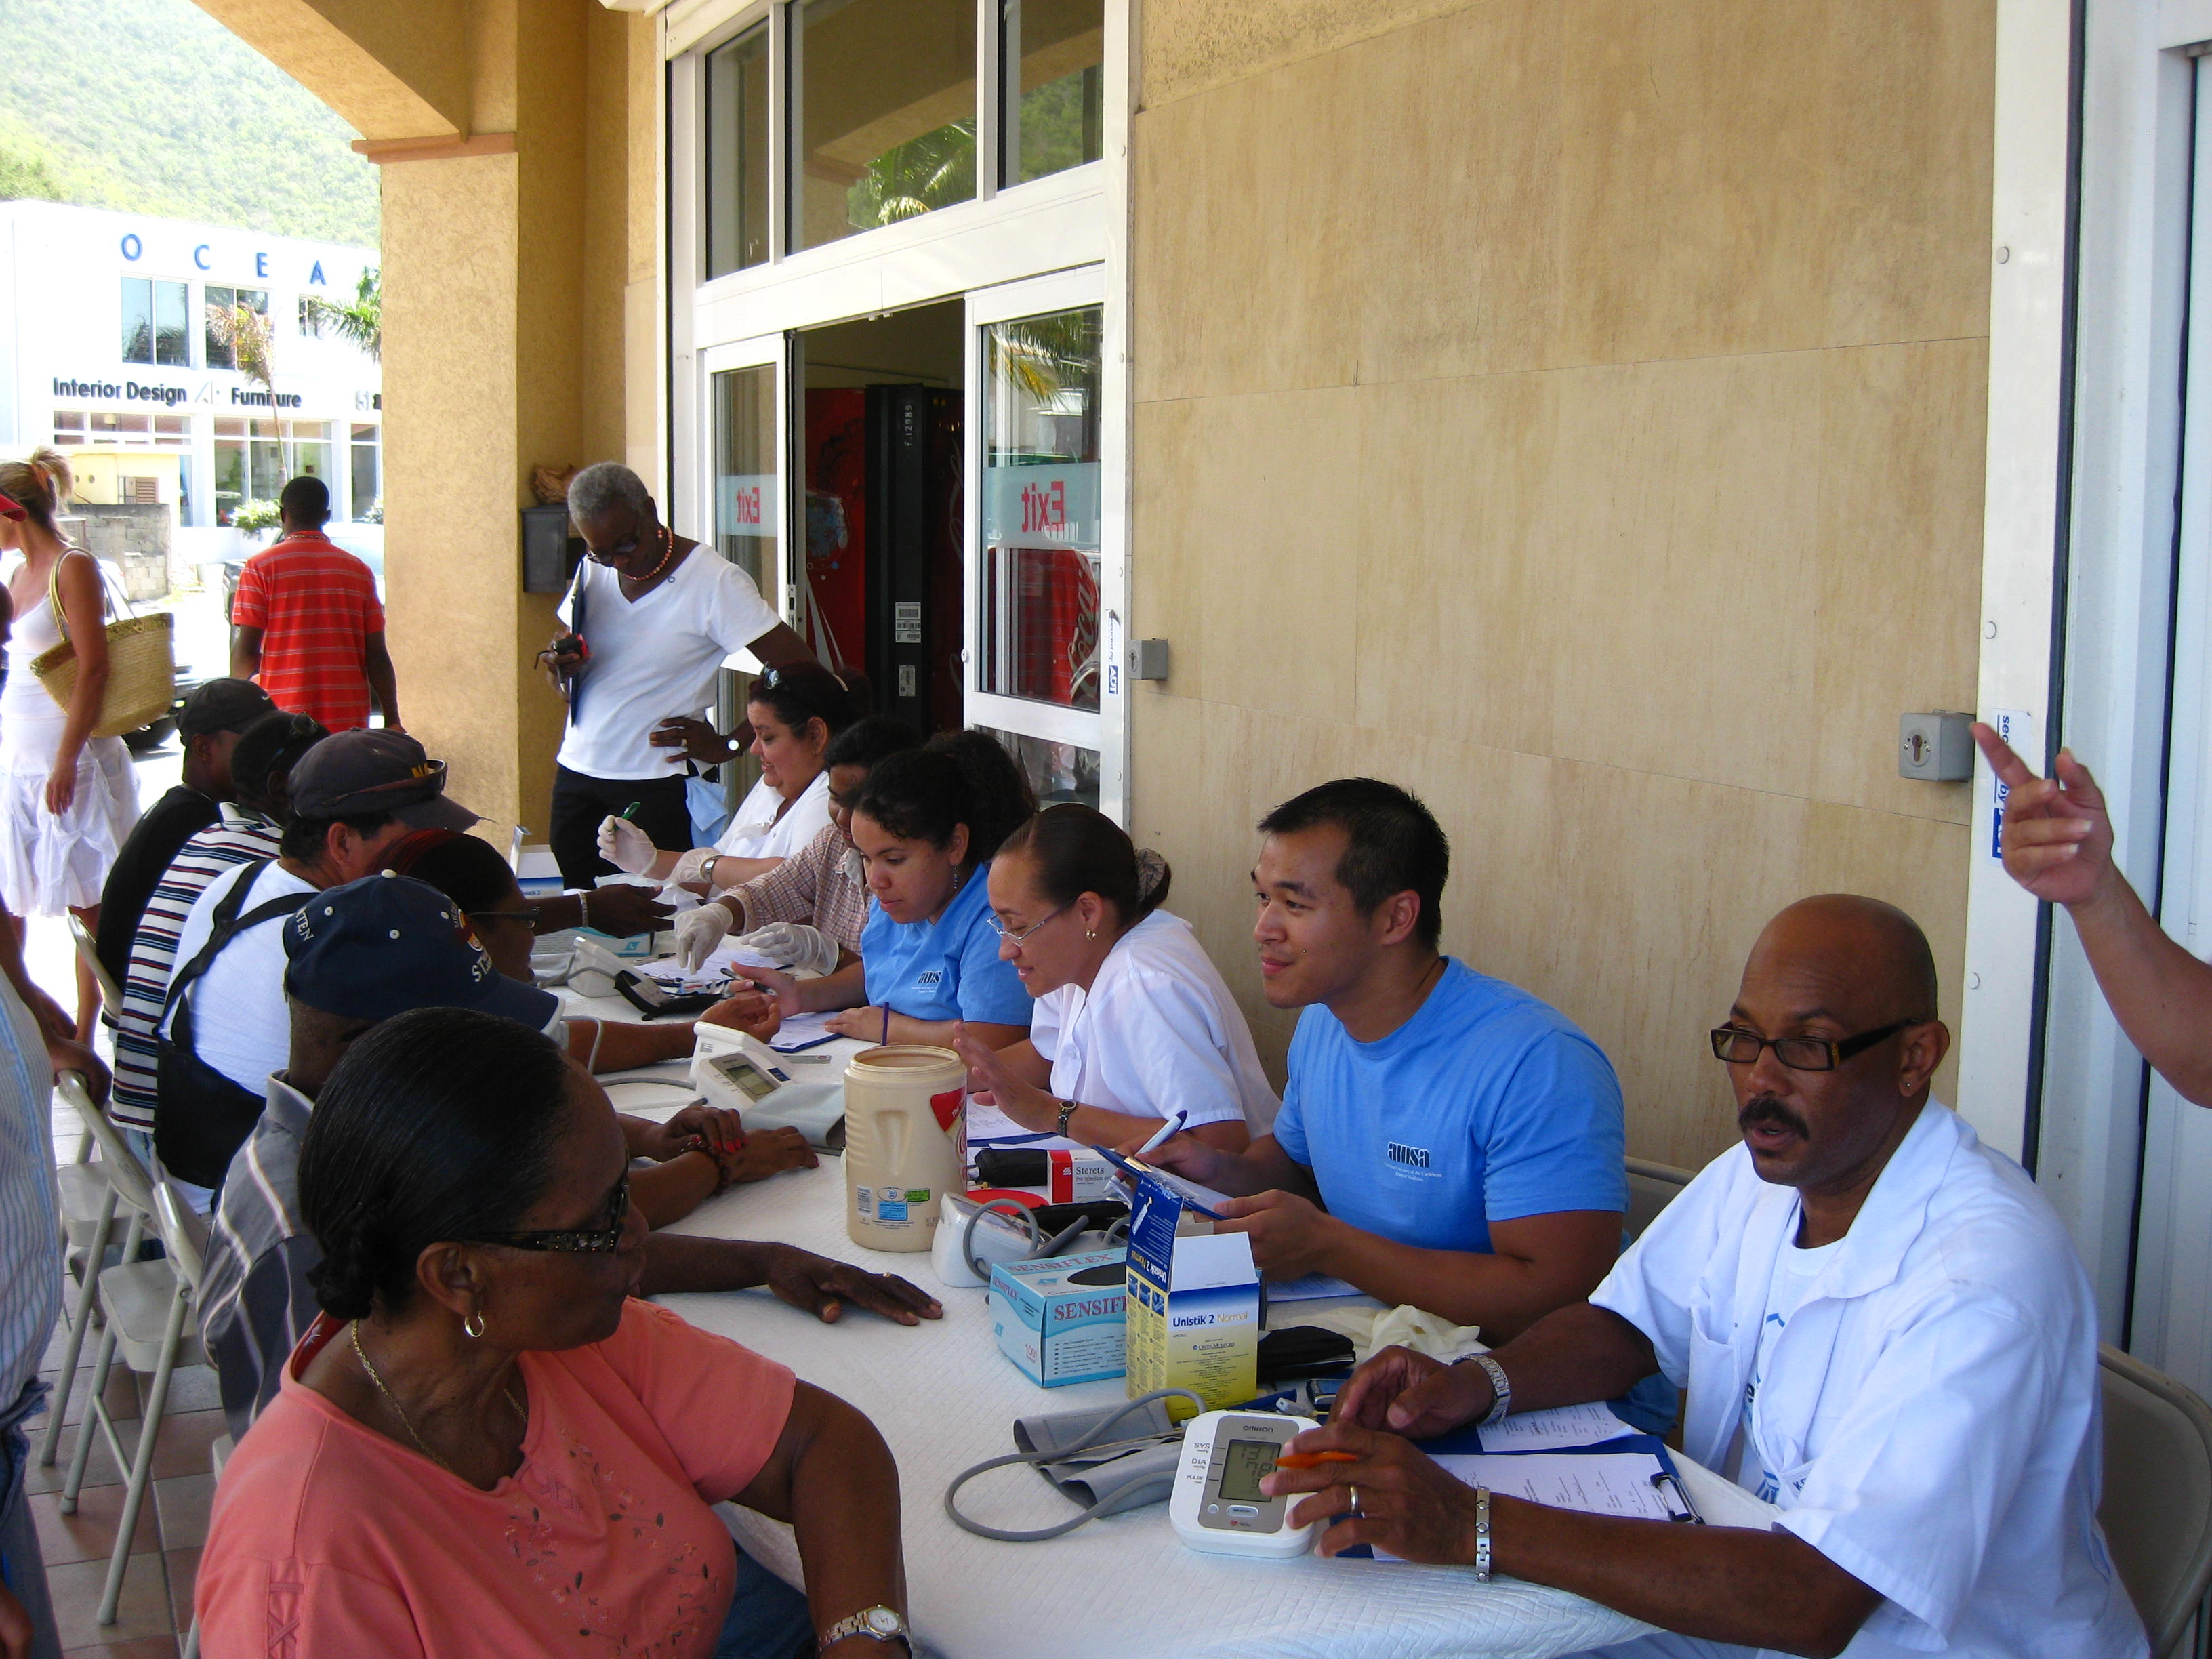 Screening for diabetes in the St. Maarten community, outside of ACE Superstore.